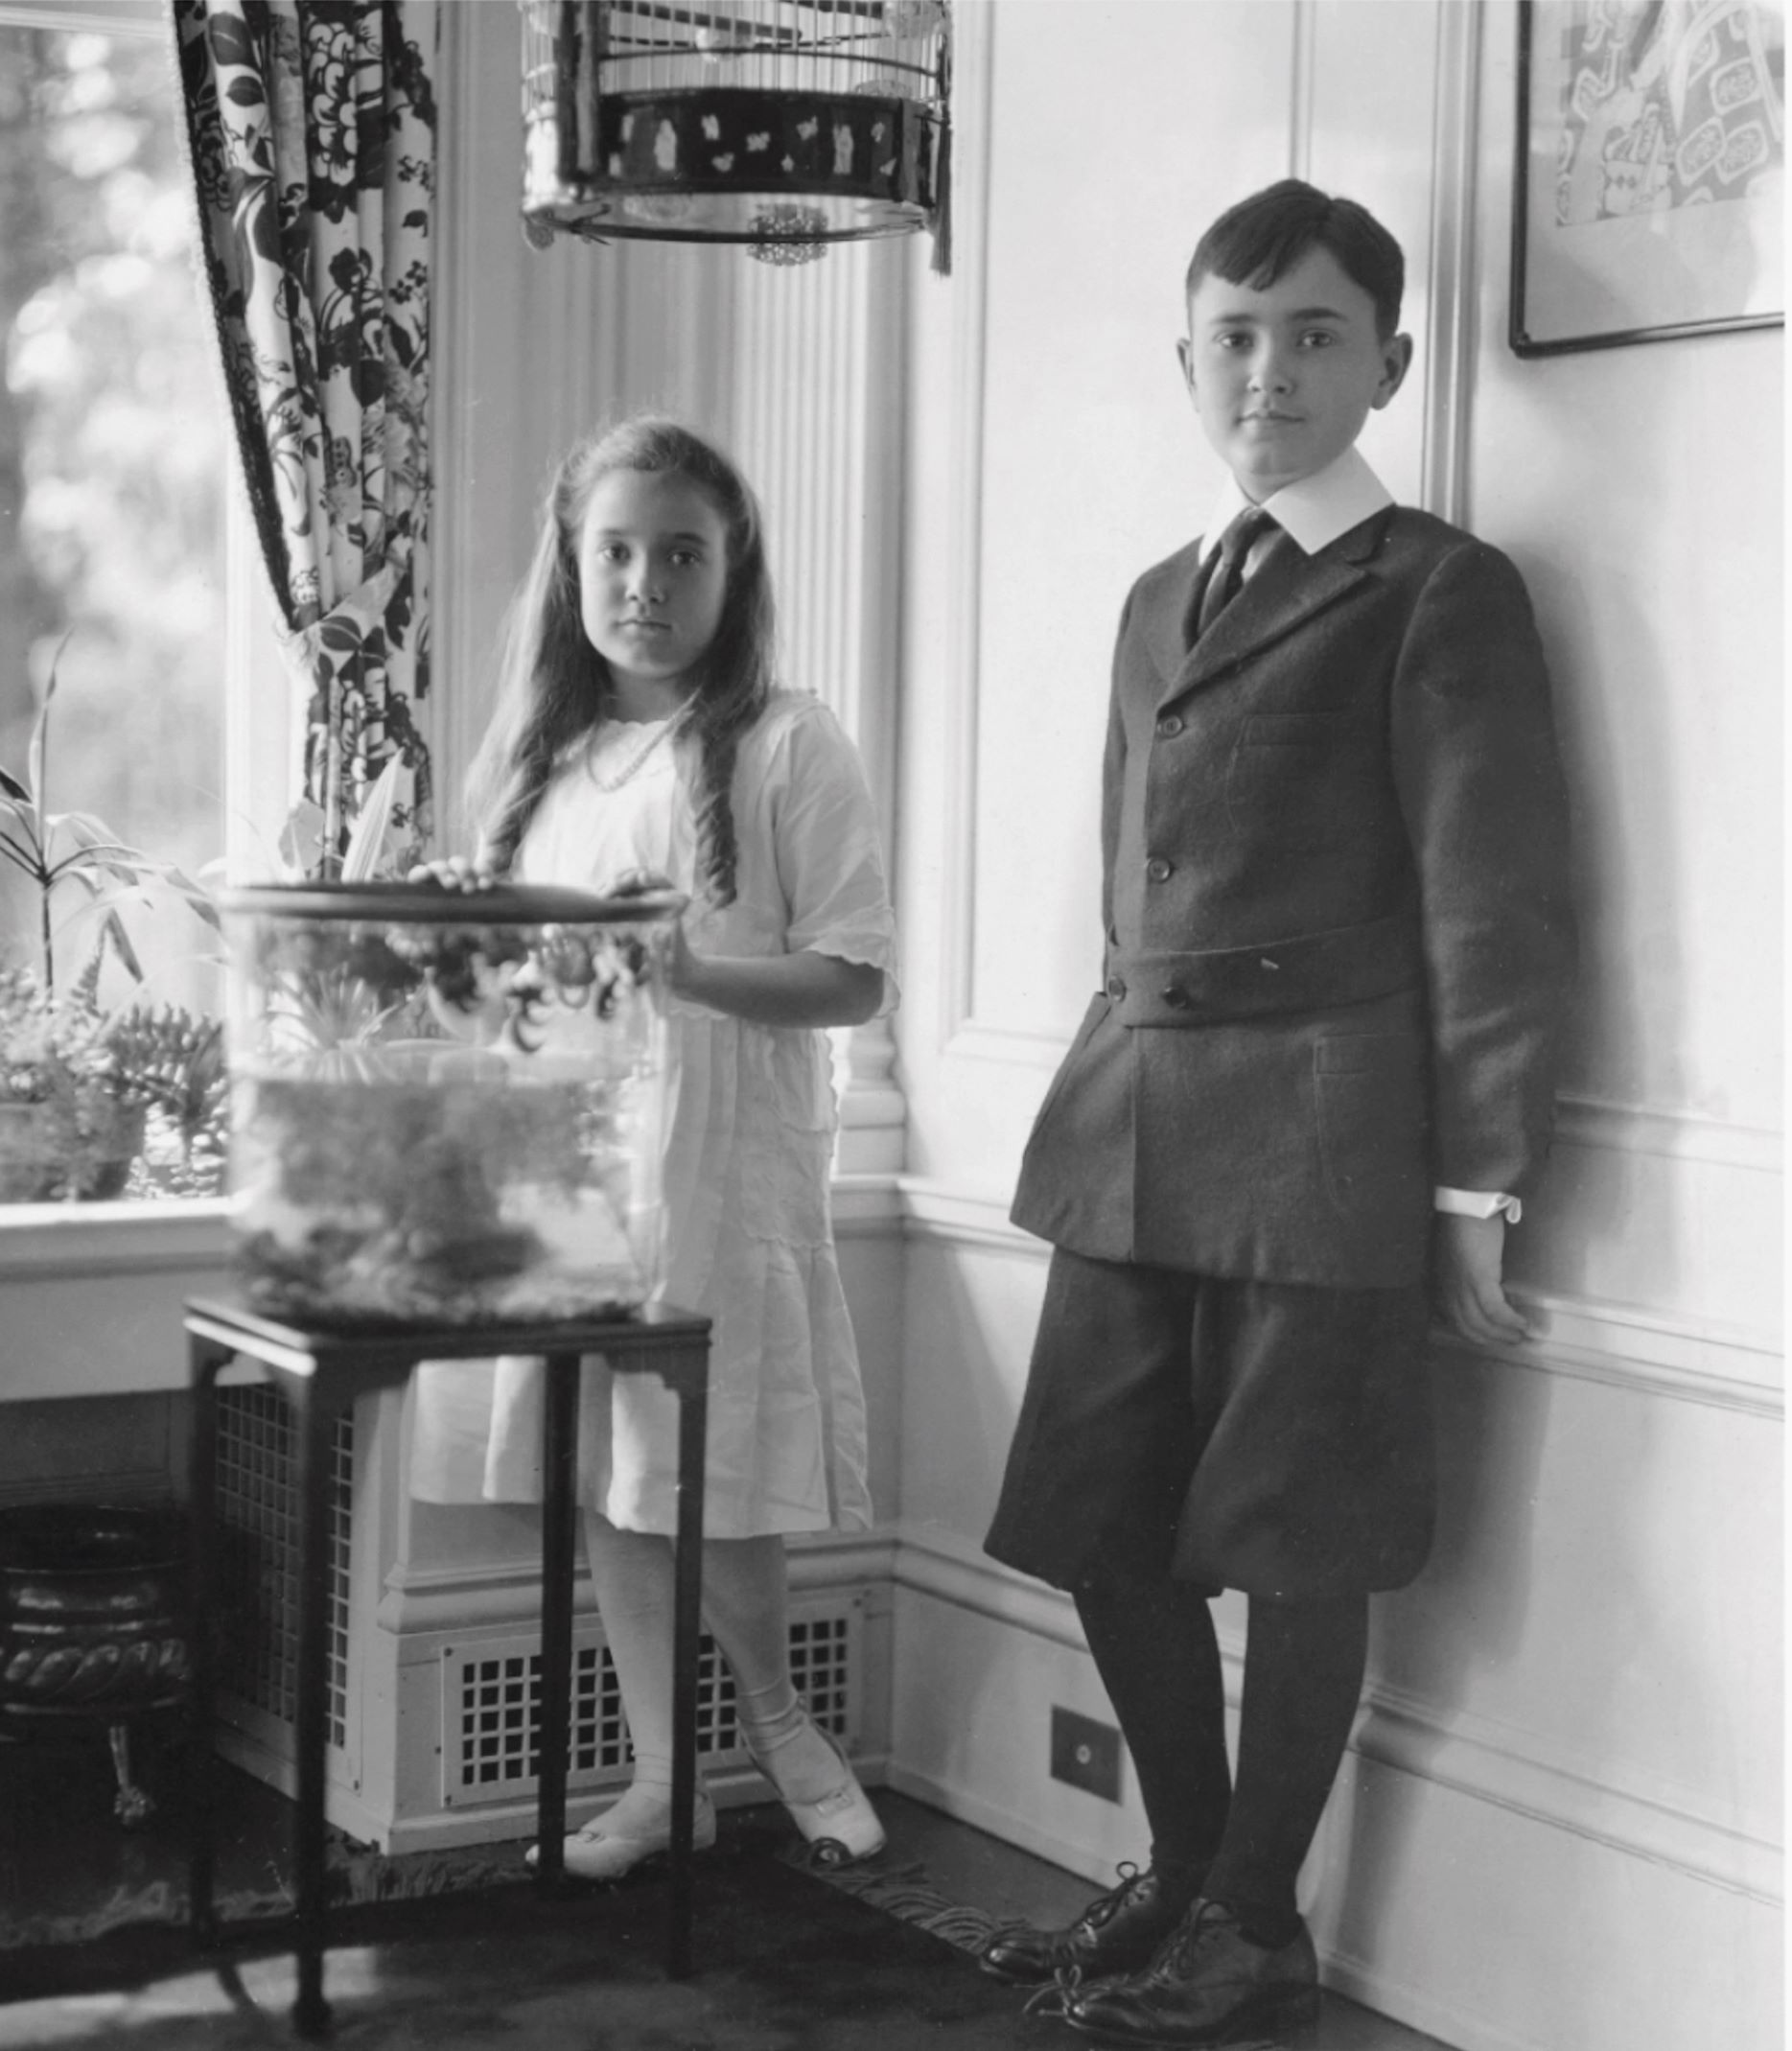 Portrait of Philip and his sister, Theodate, likely in their childhood home, New London, Ohio, as reproduced in Philip Johnson: A Visual Biography